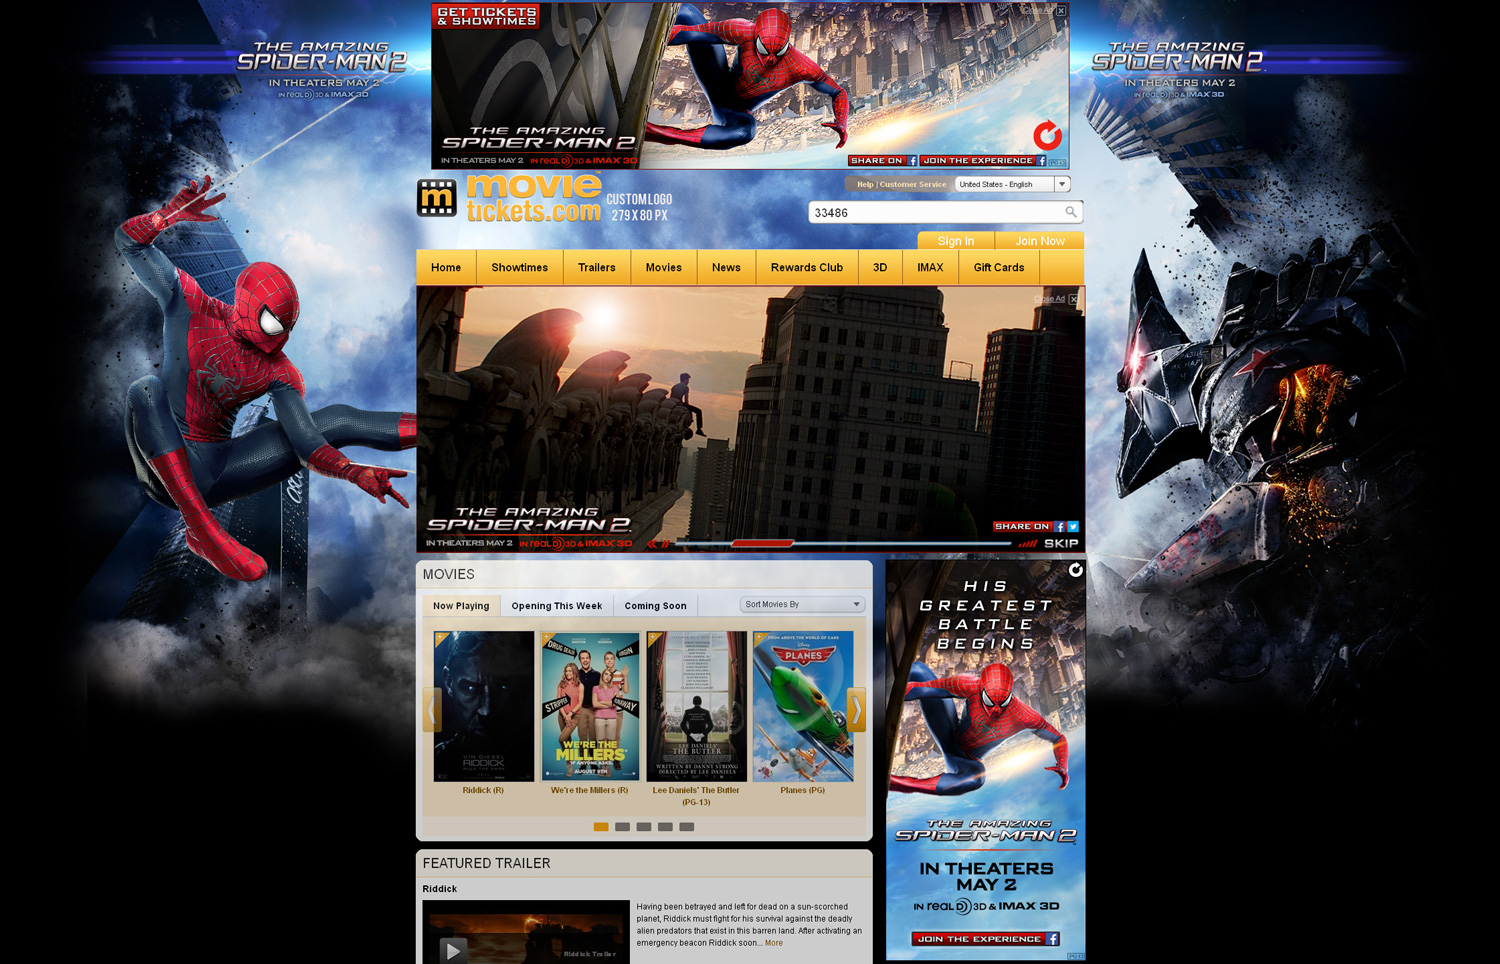 Spiderman 2 Movie Tickets Page Takeover